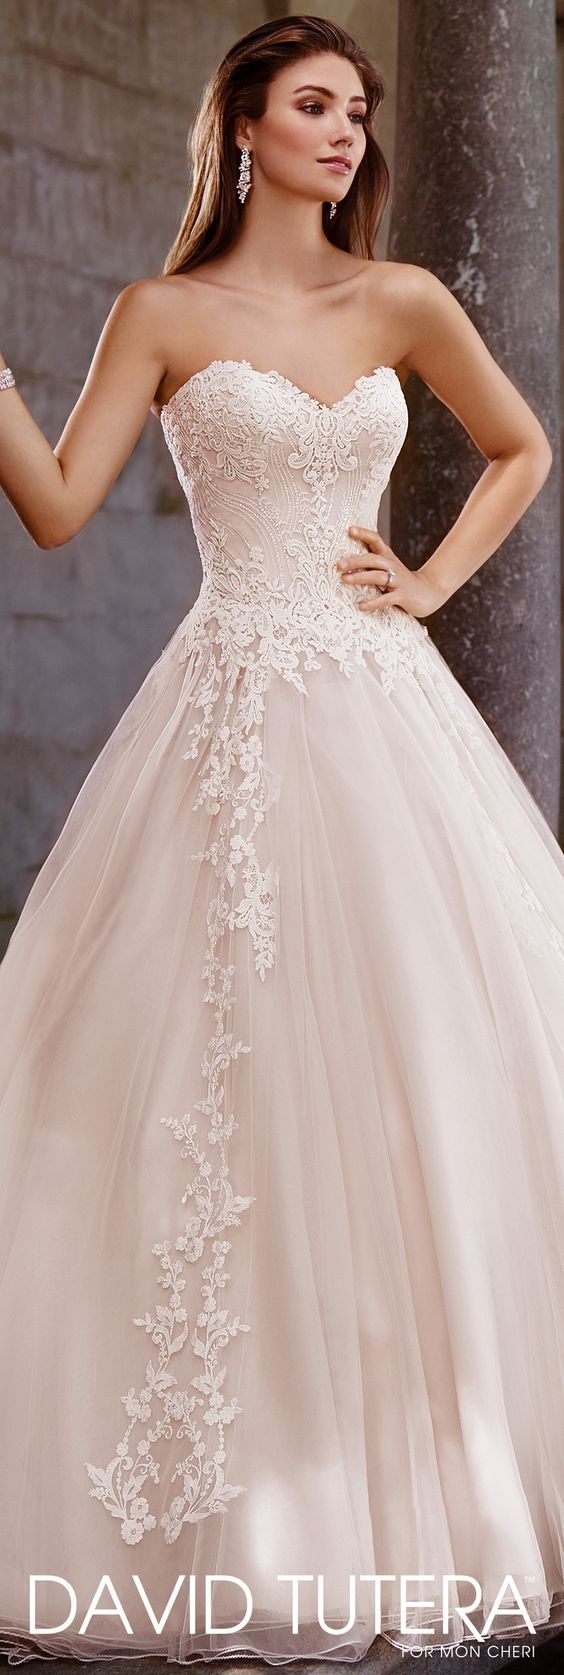 best images about wedding on pinterest